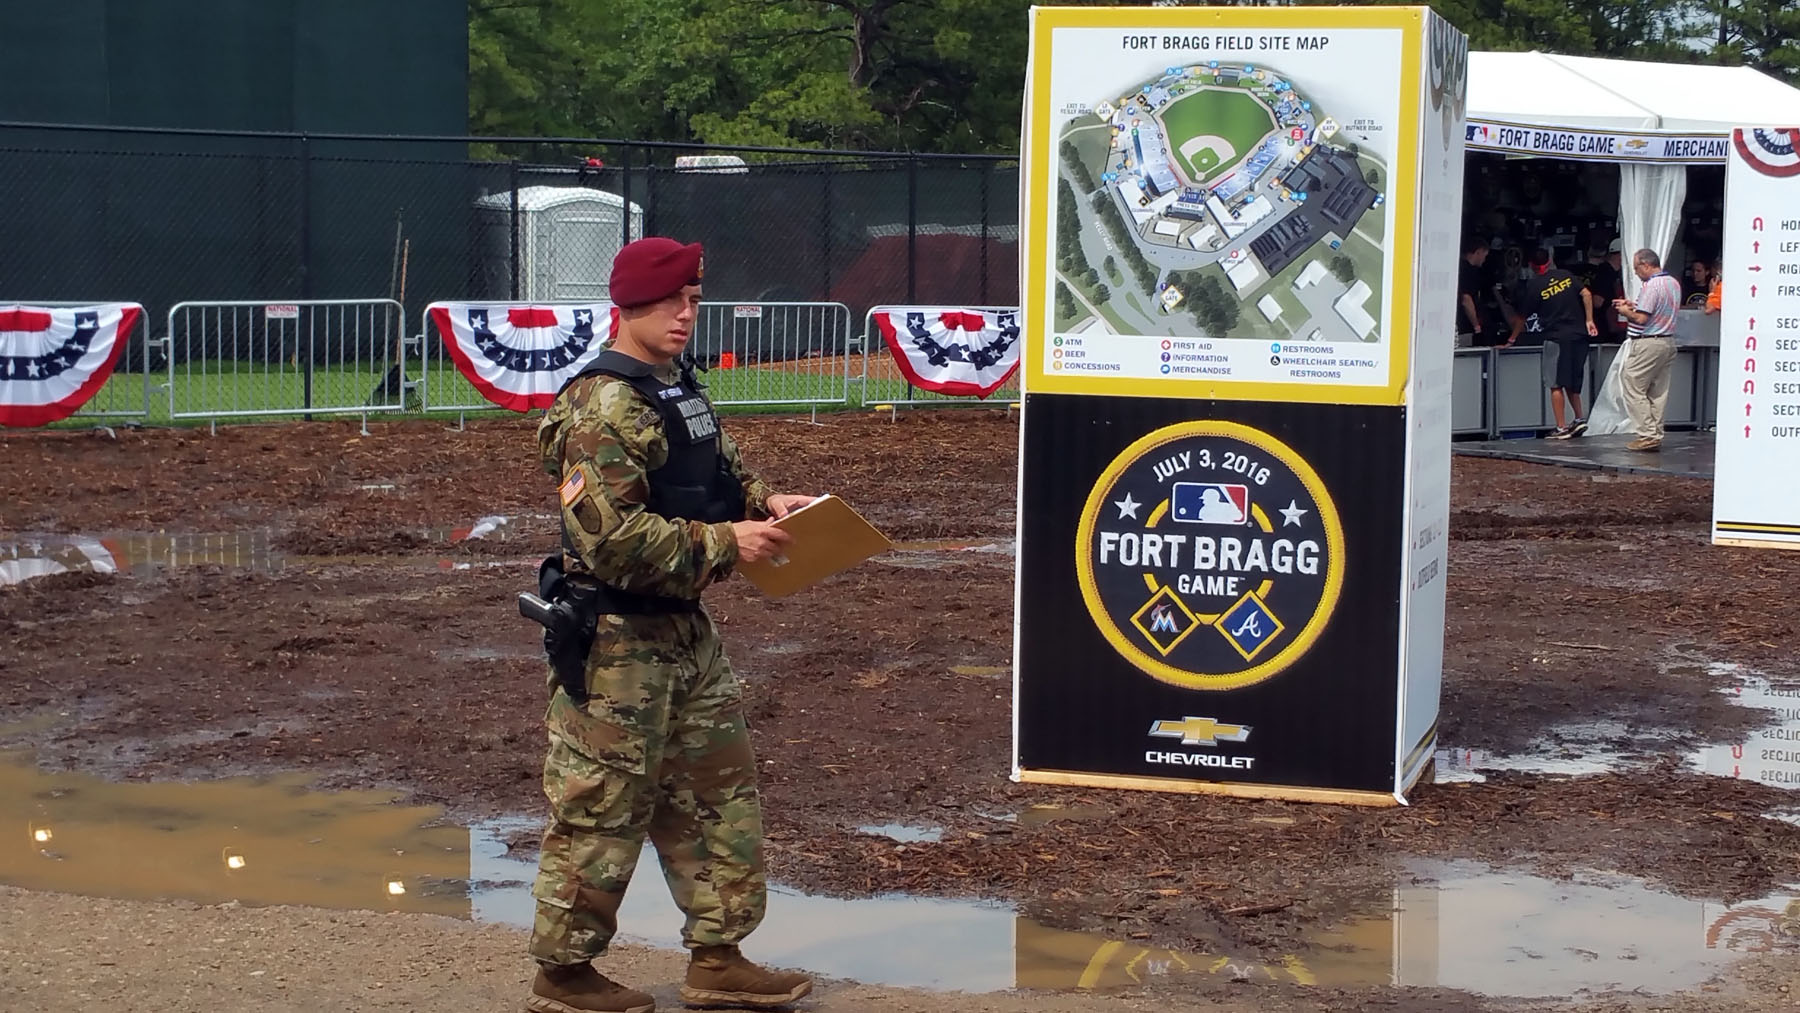 fort-bragg-game-MP-sign